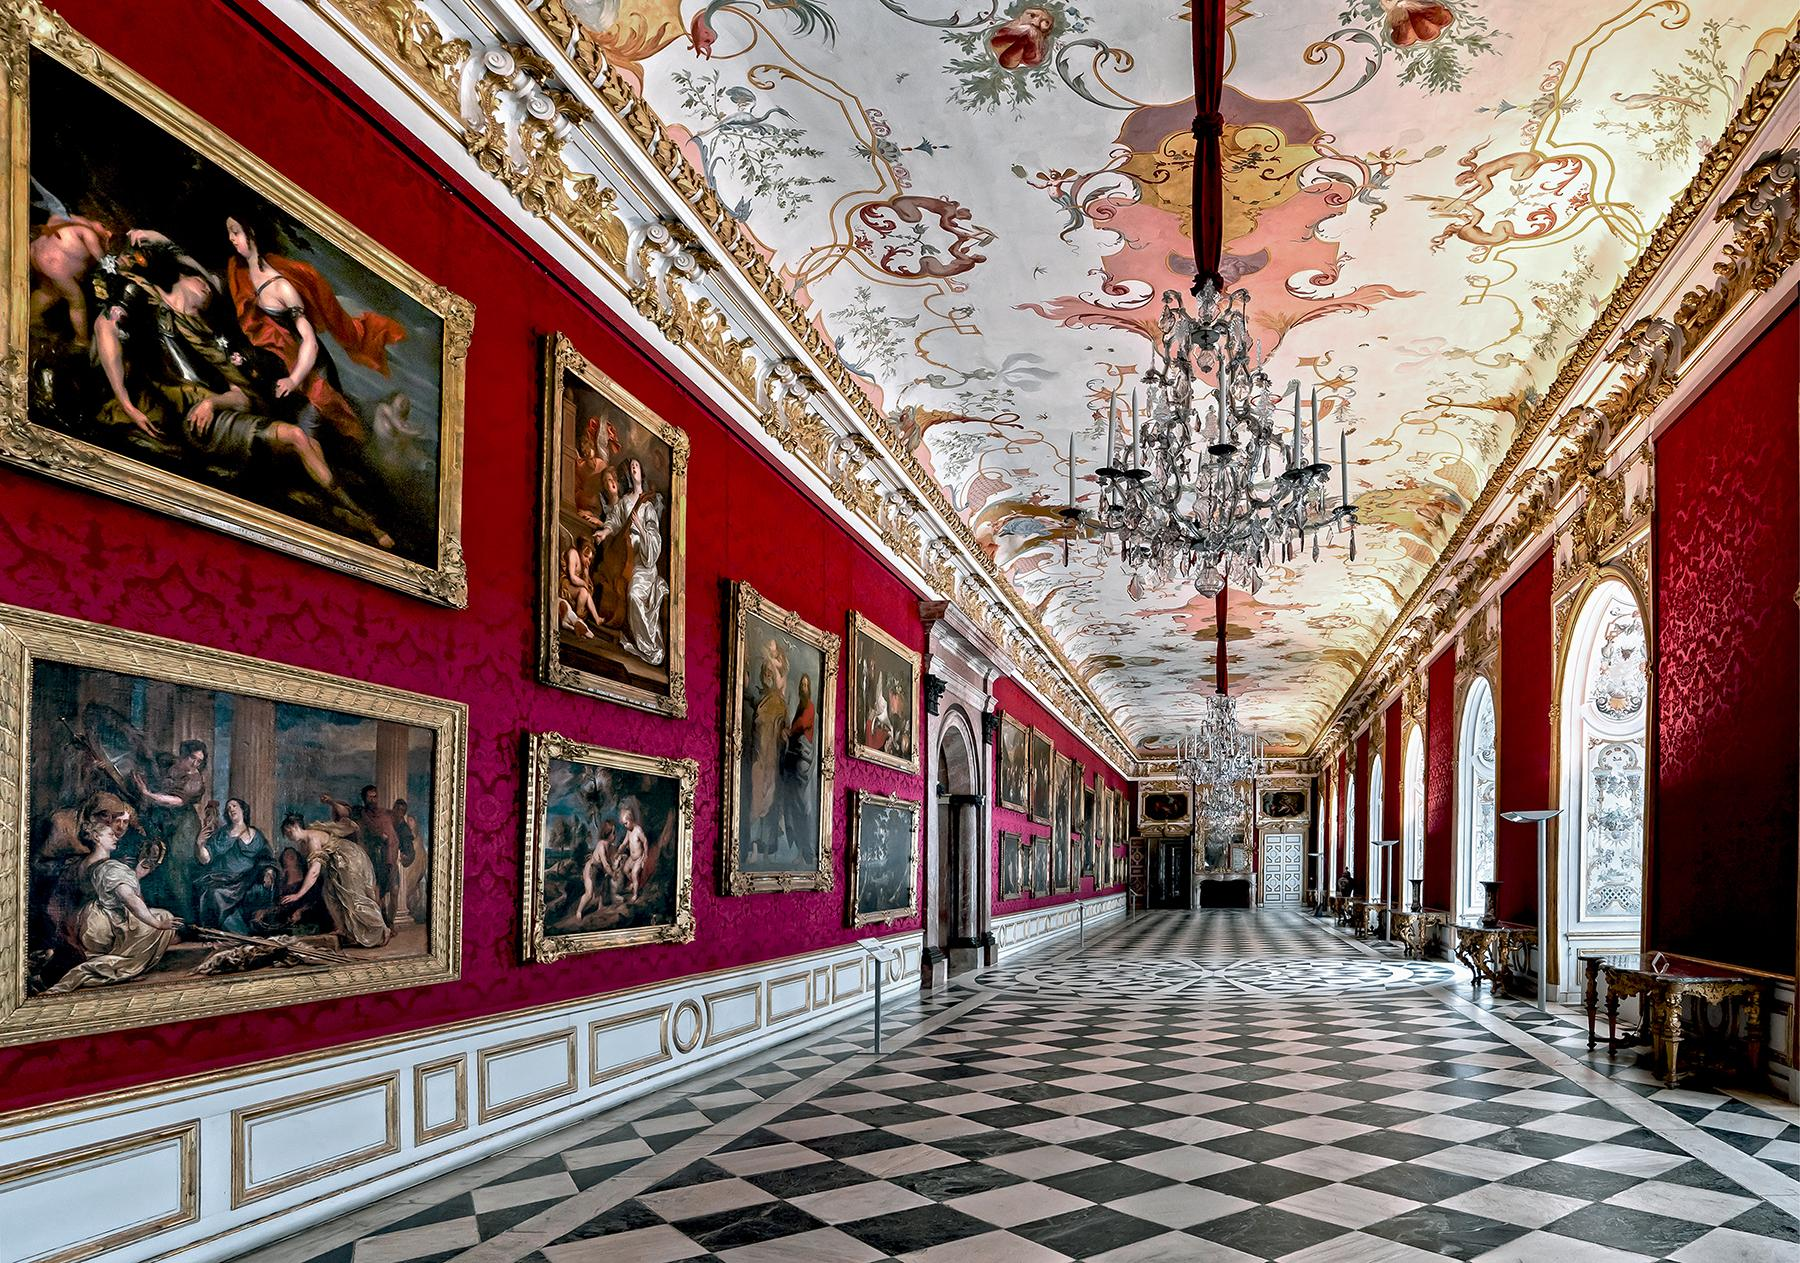 Royal Red by Moritz Hormel contemporary photography of a palace interior